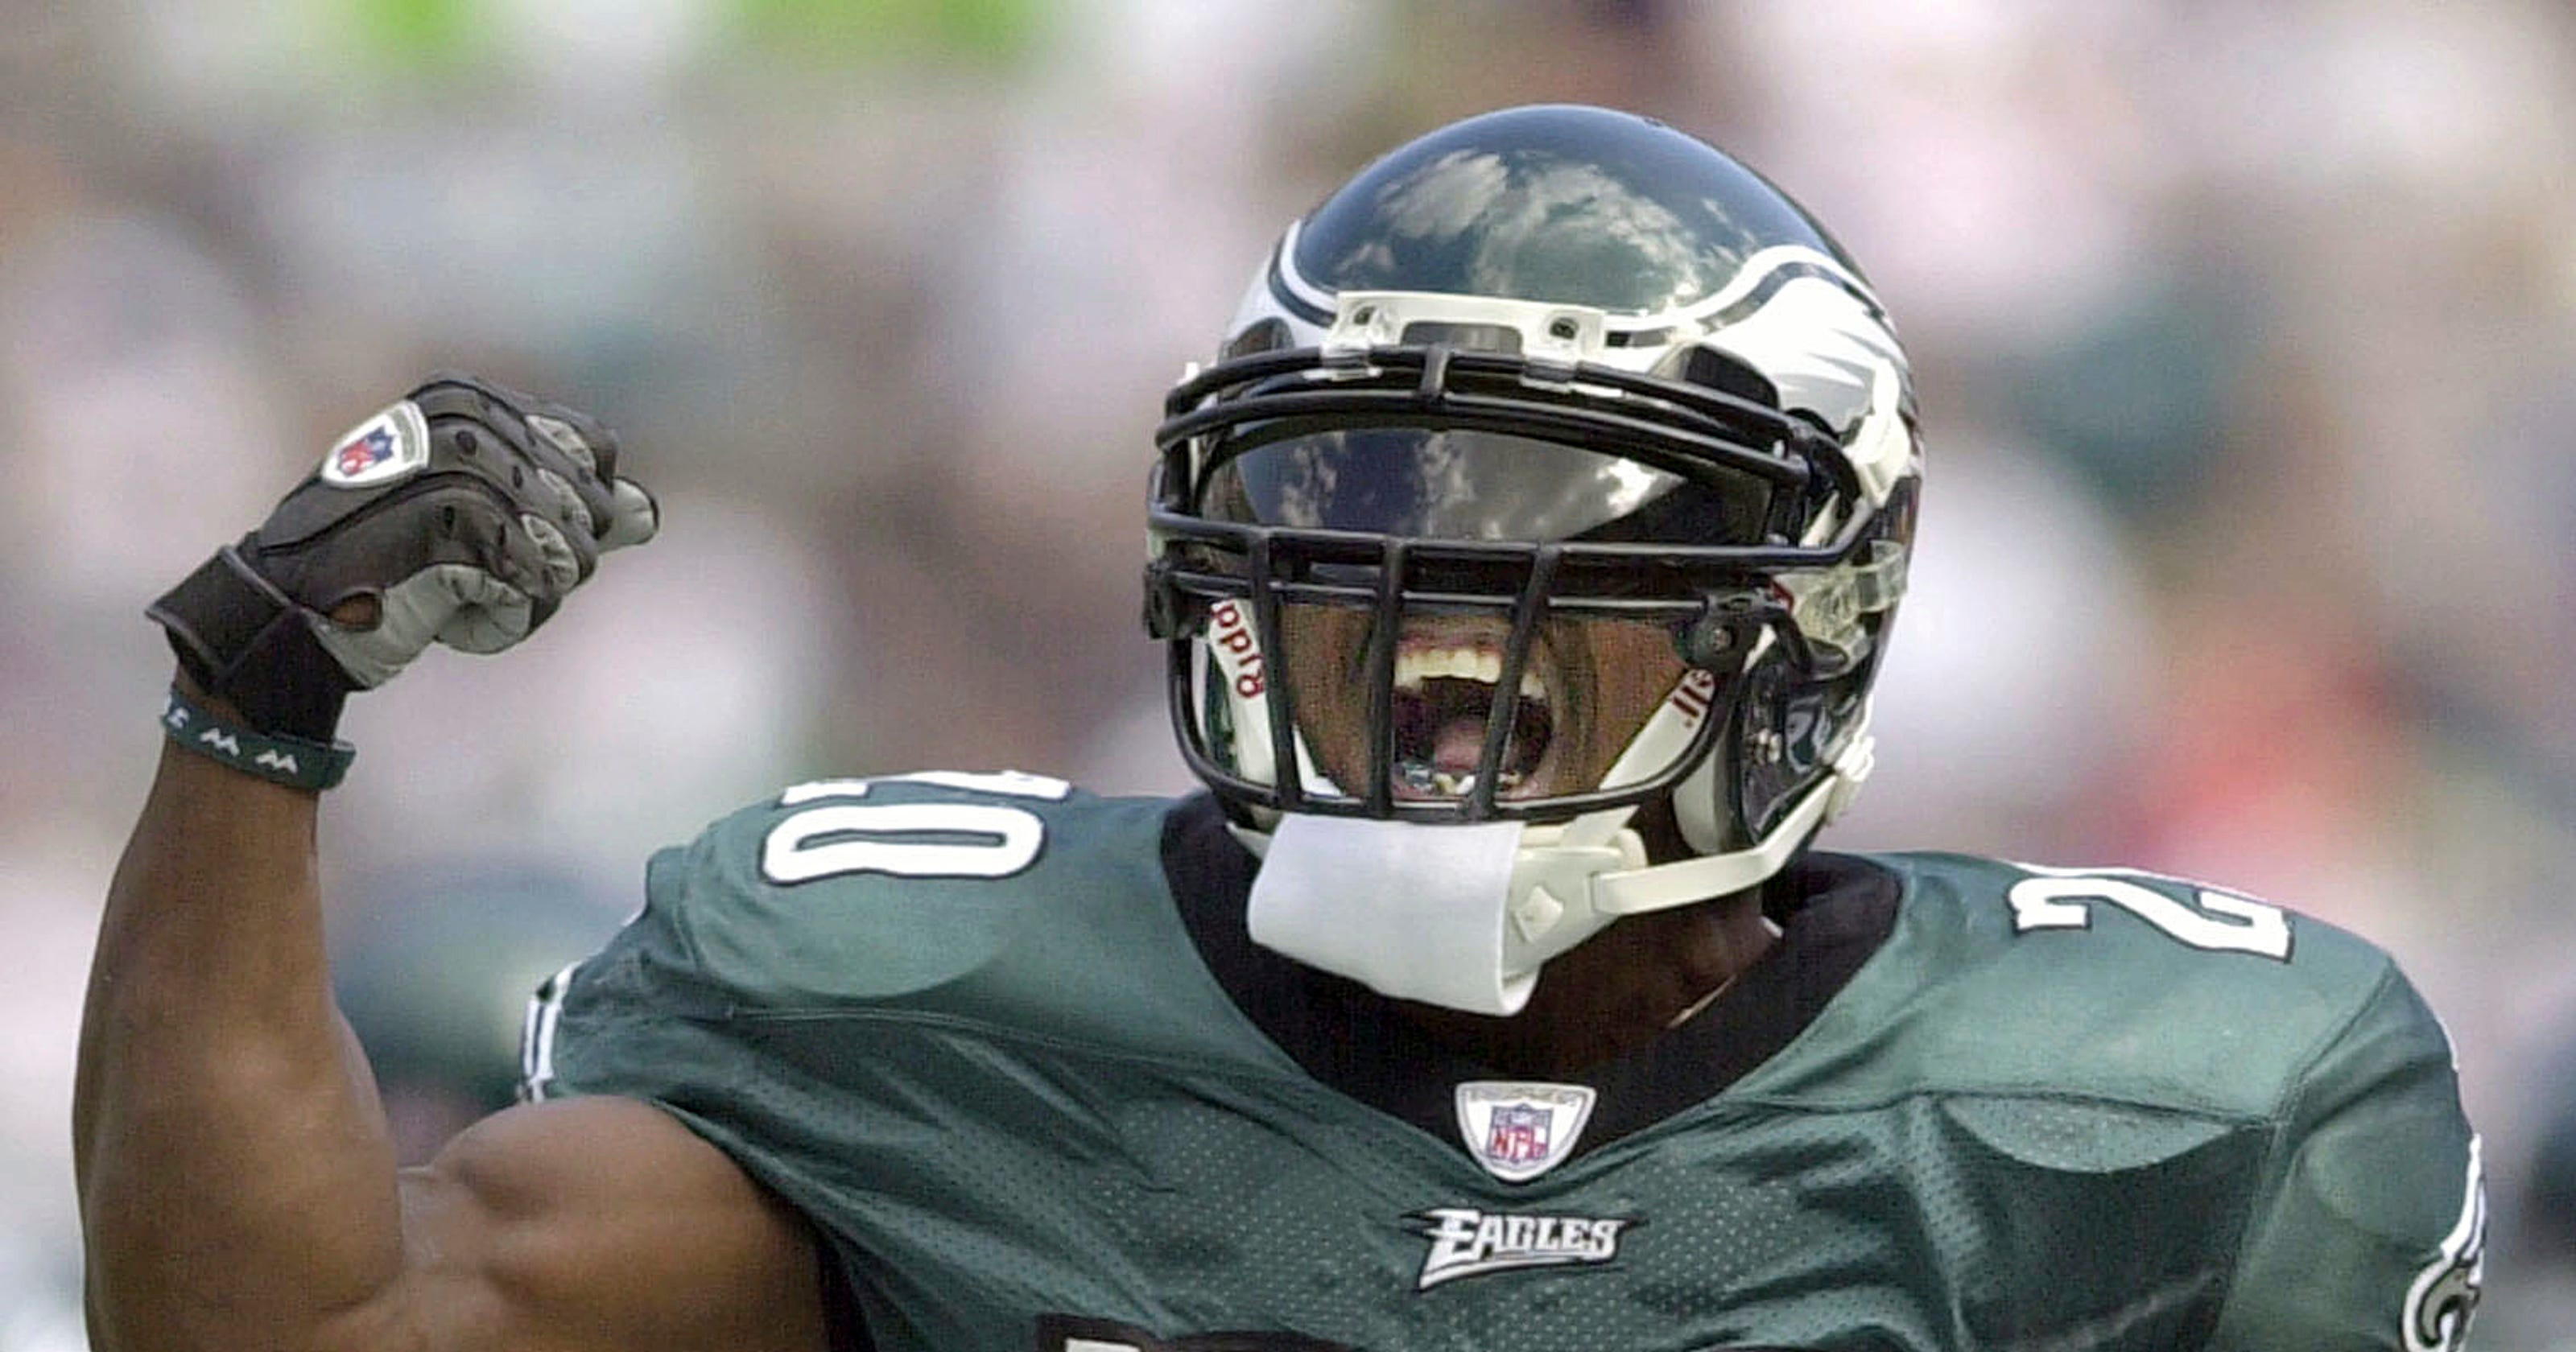 94e2539a46a Dawkins  love affair with Eagles  fans shows heading into Hall of Fame